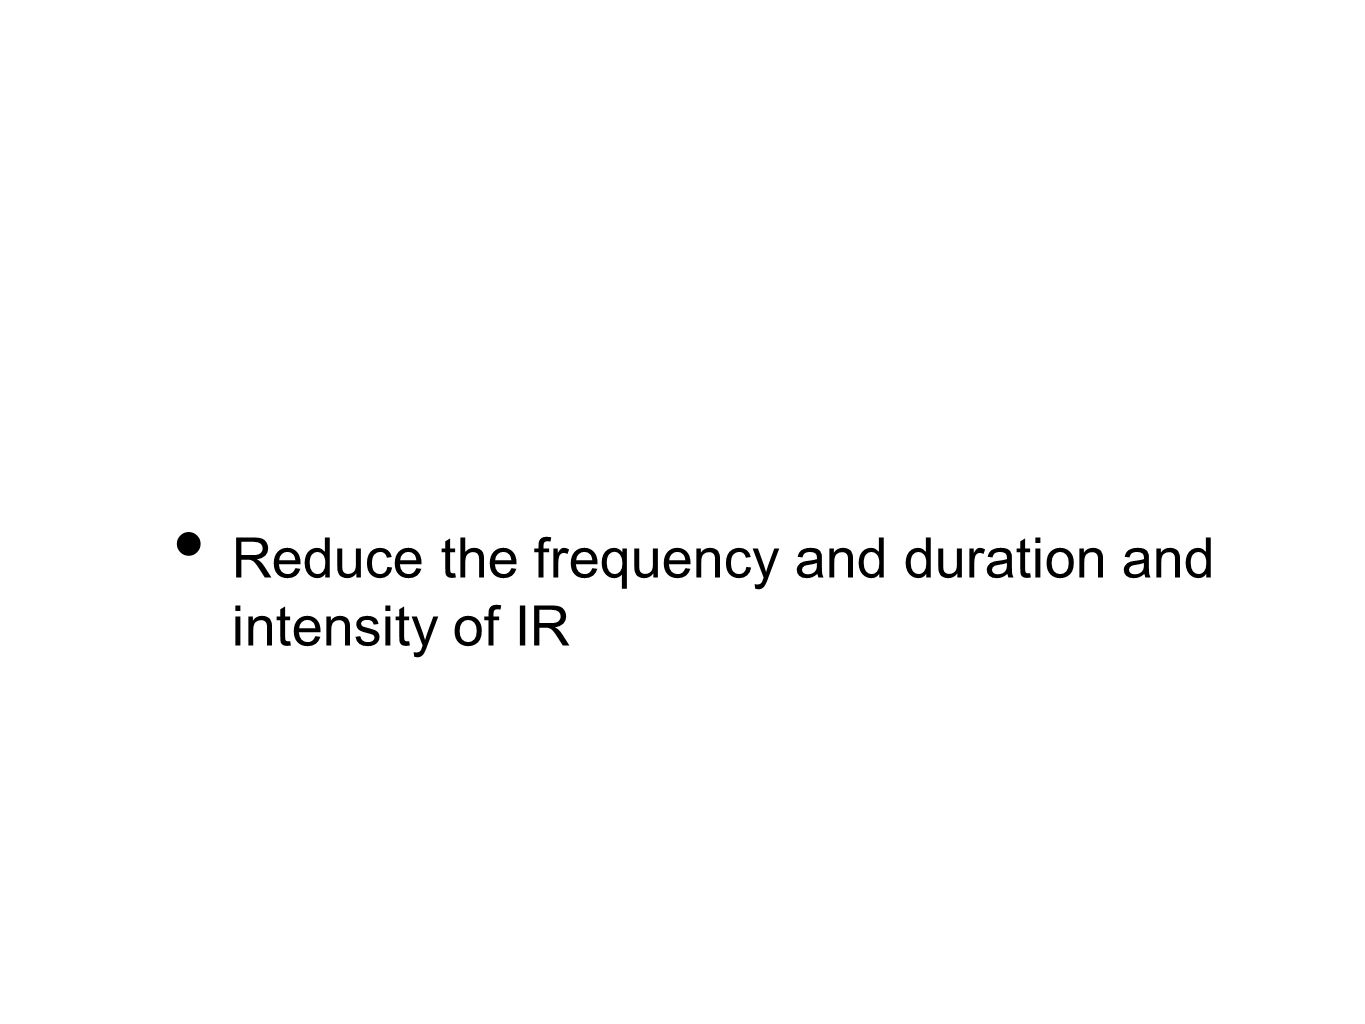 Reduce the frequency and duration and intensity of IR